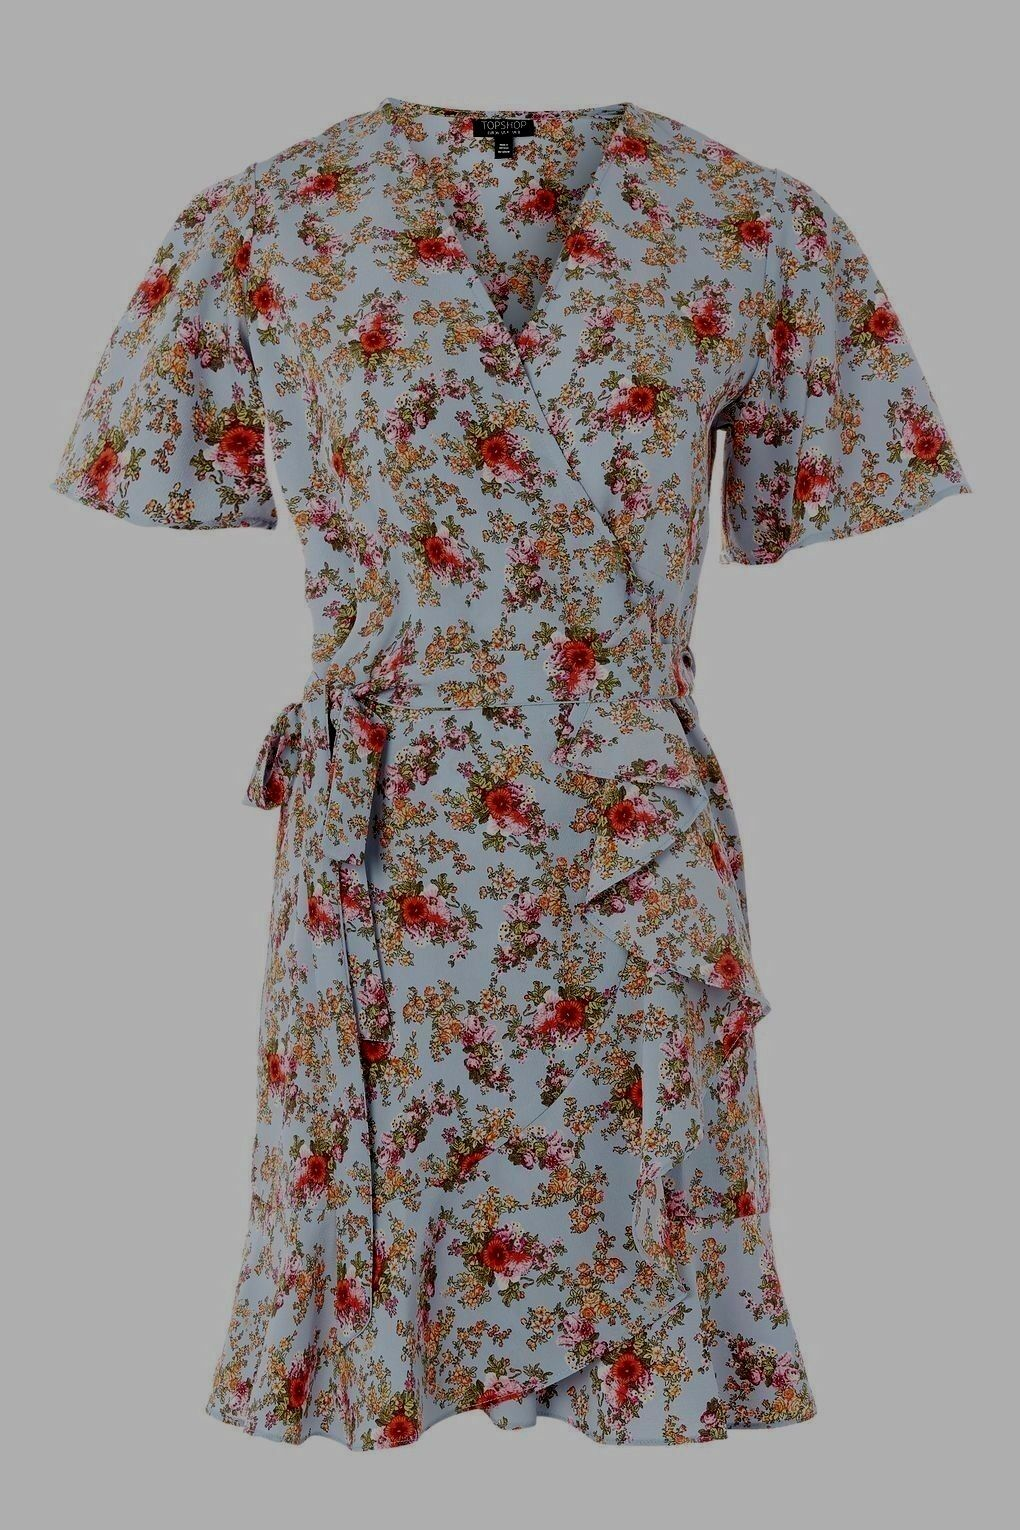 BNWT Topshop bluee Ditsy Floral Confetti Wrap Style Tea Dress - Size 10